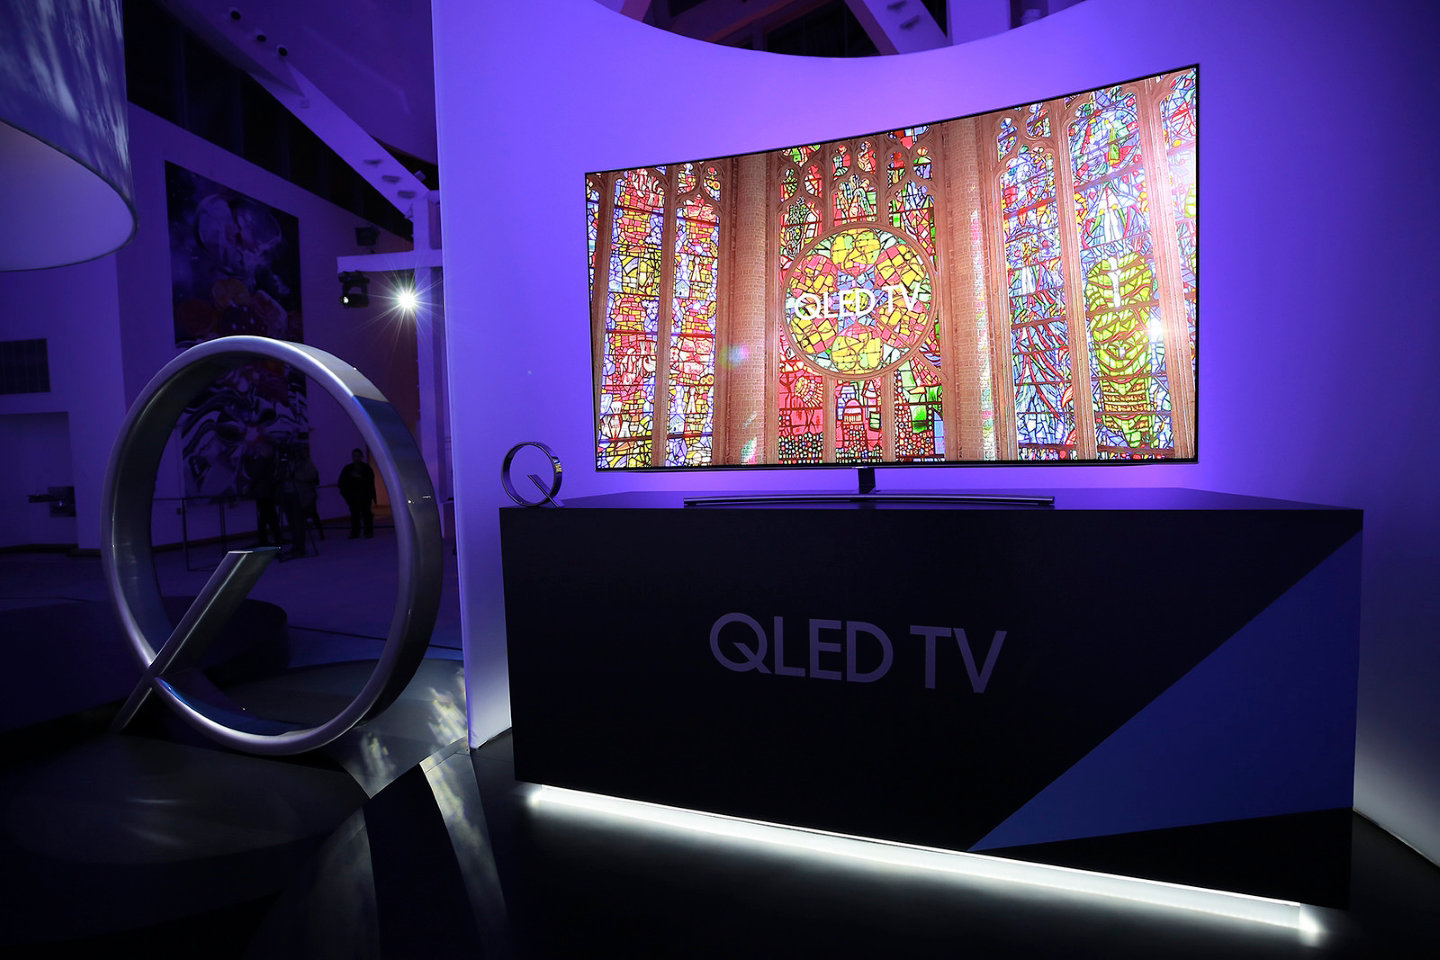 Samsung Electronics Recognized for Design and Technology Innovation at the 2017 Consumer Electronics Show